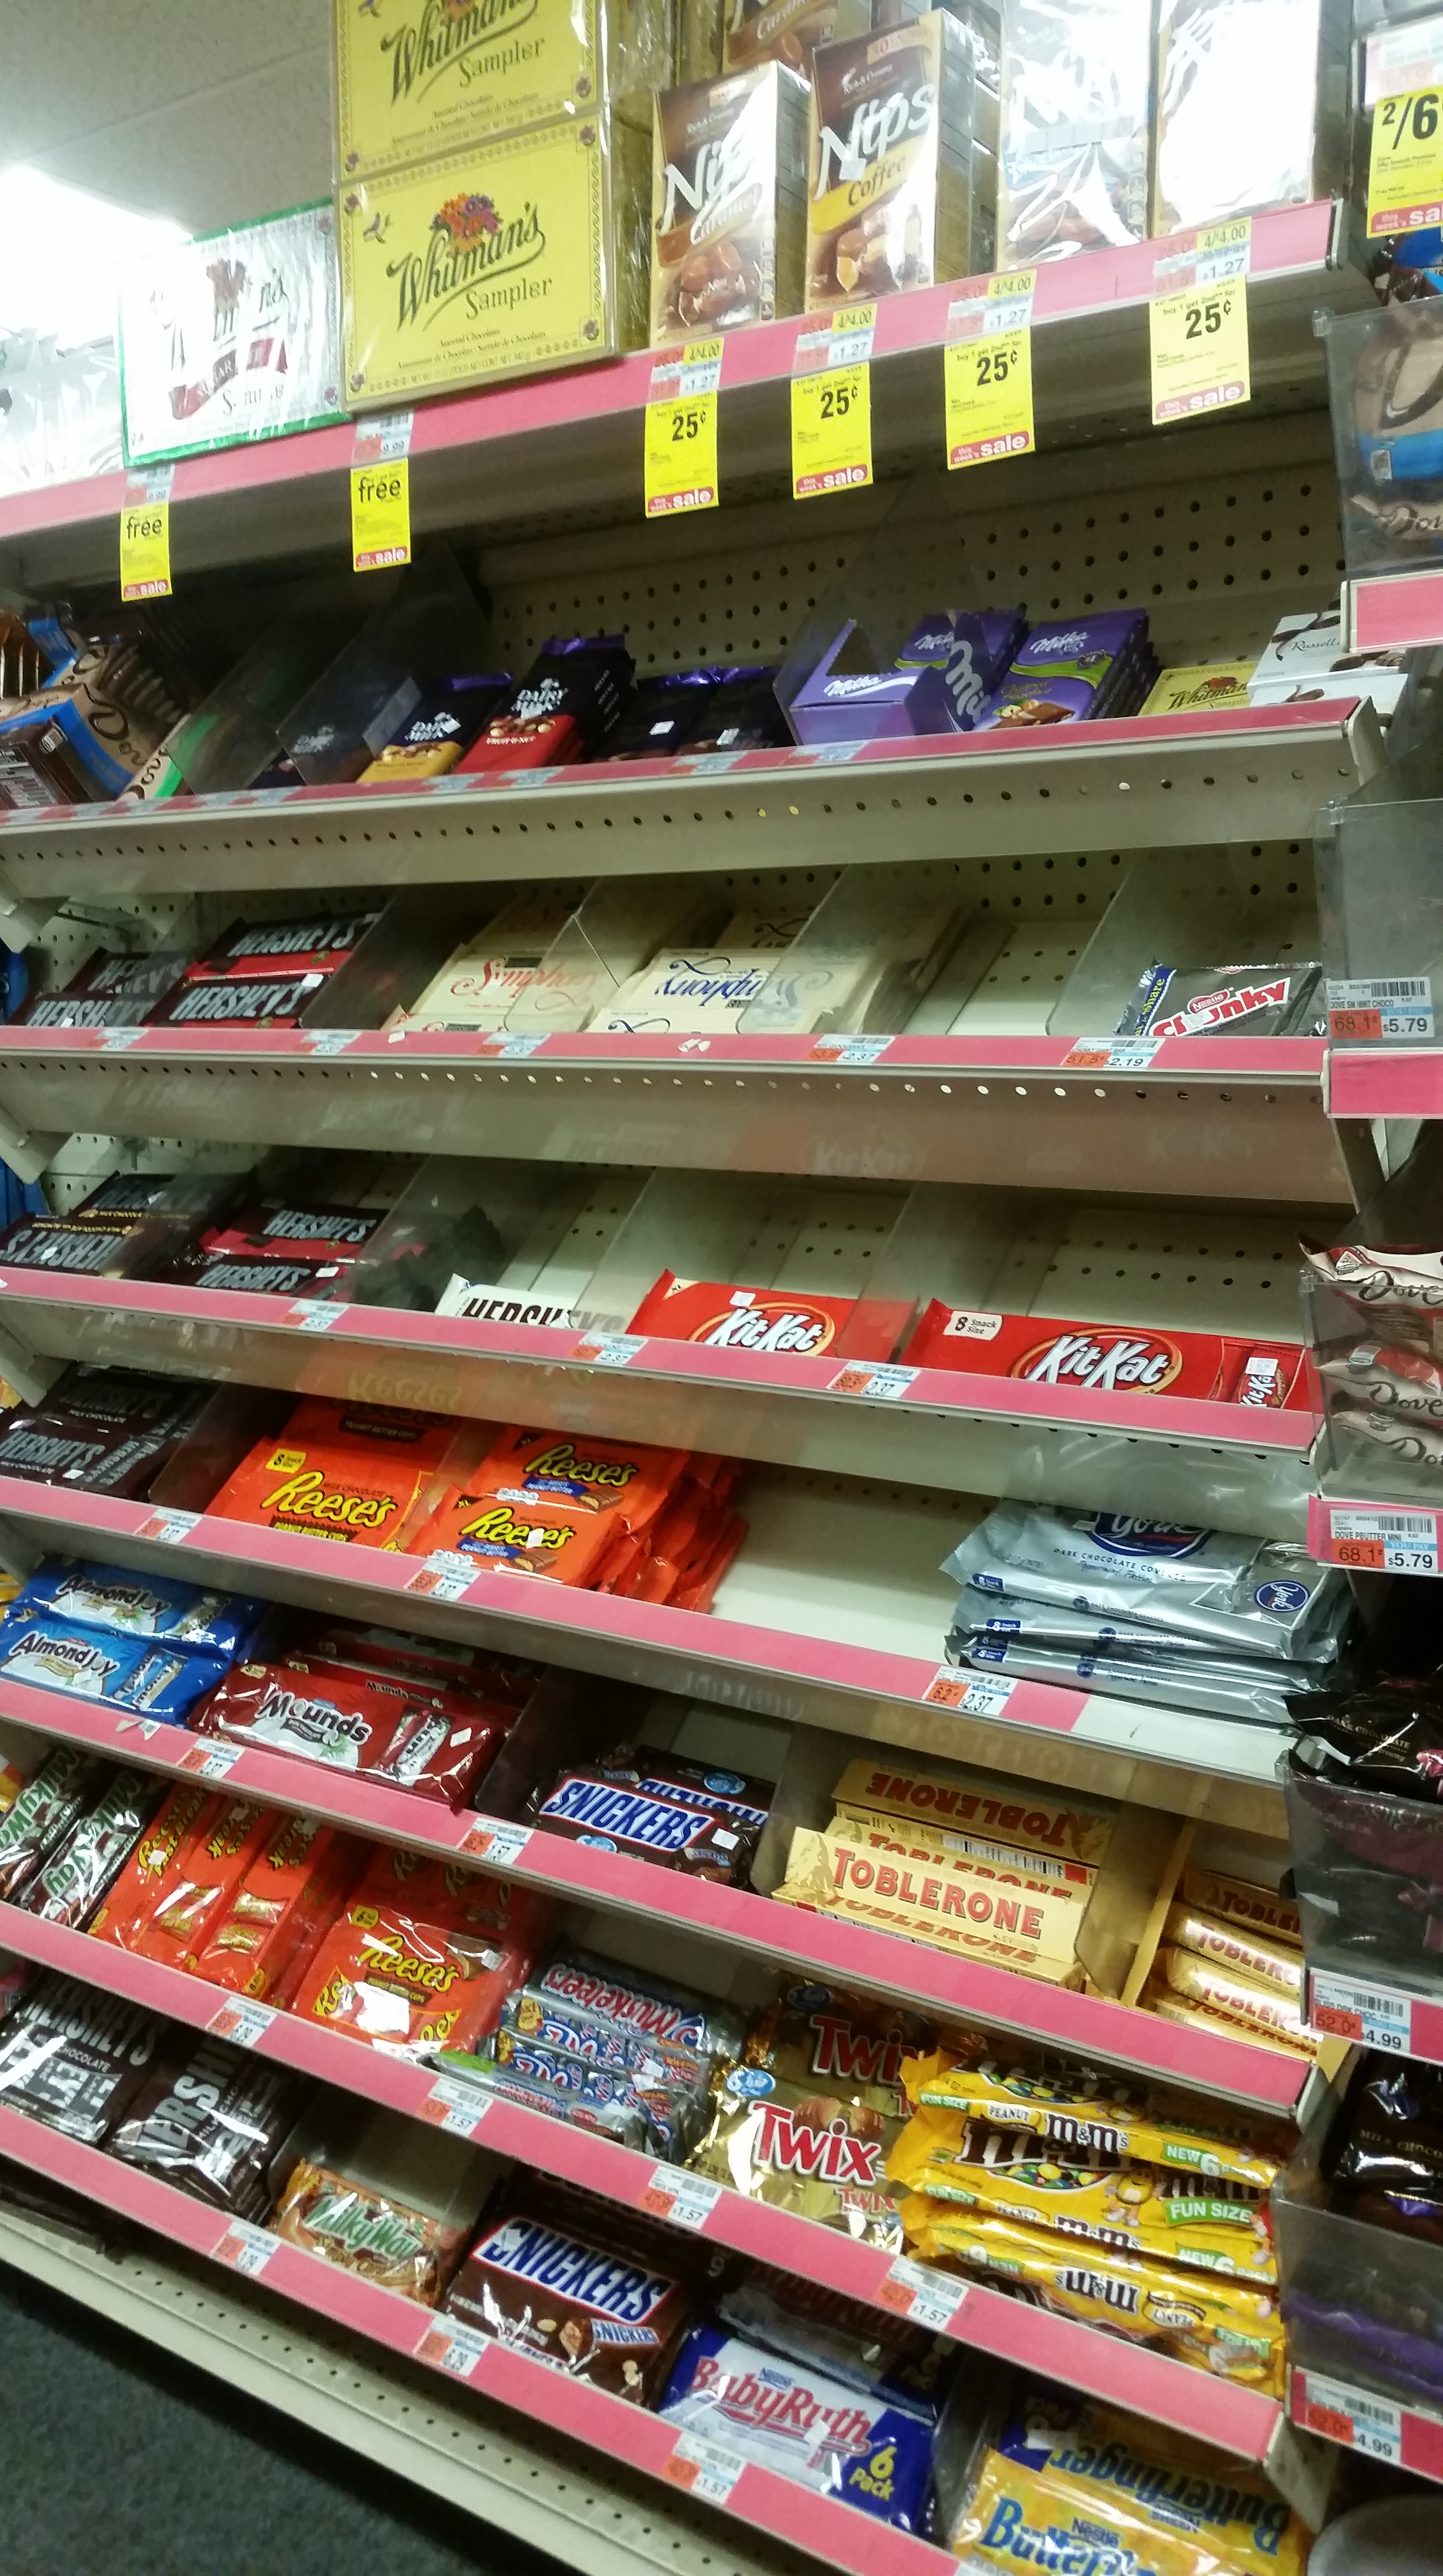 an analysis of the chocolate selection at cardullo s and cvs